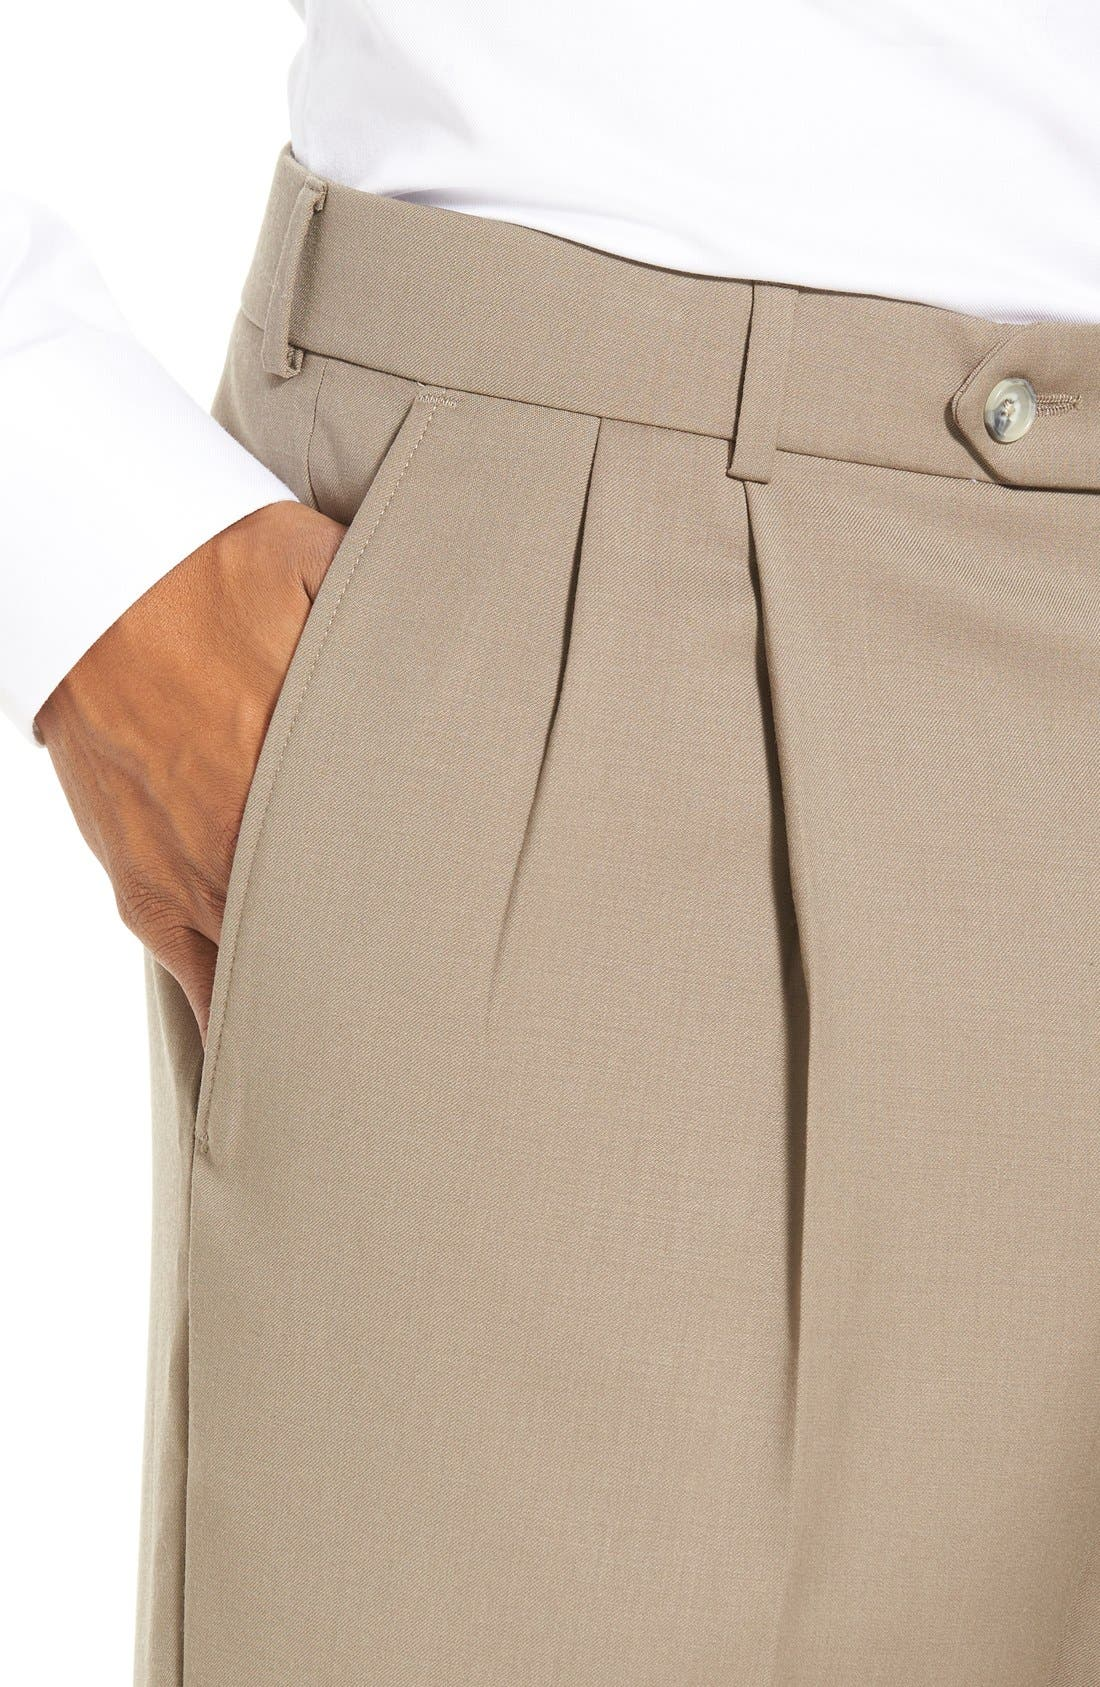 Pleated Solid Wool Trousers,                             Alternate thumbnail 49, color,